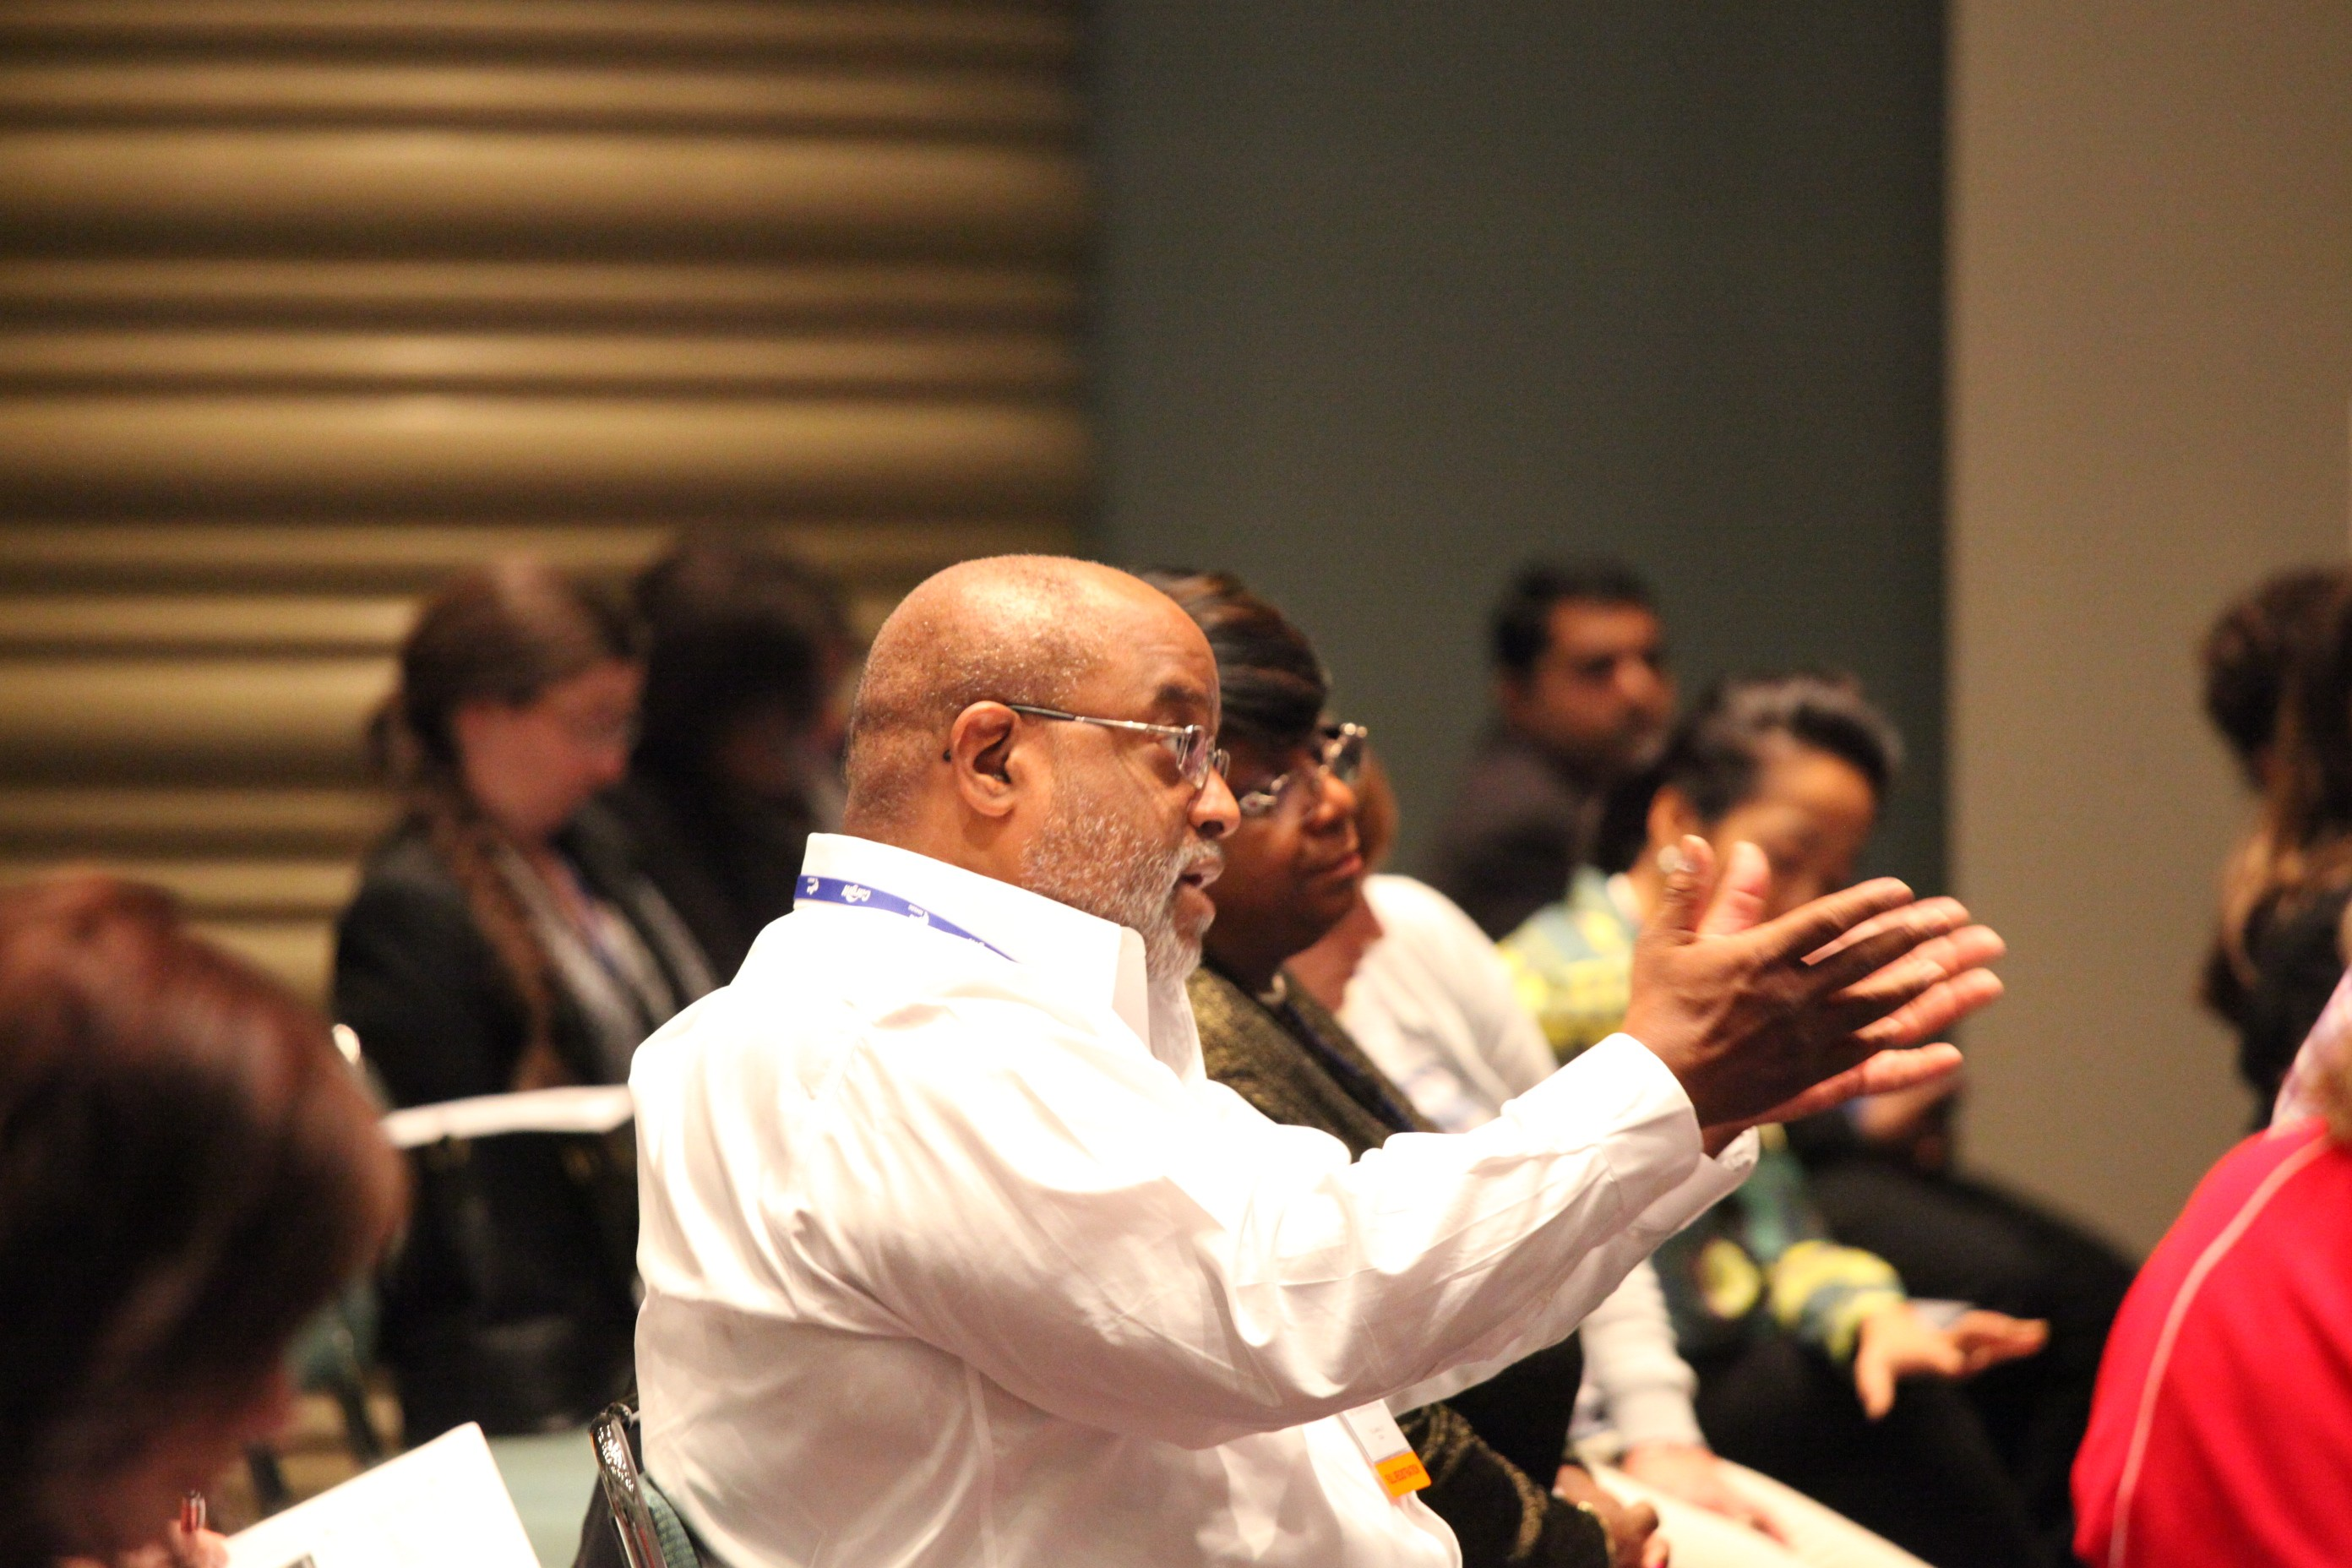 Workshop participant contributes to the discussion on analyzing corporate spend data at Wednesday's session.